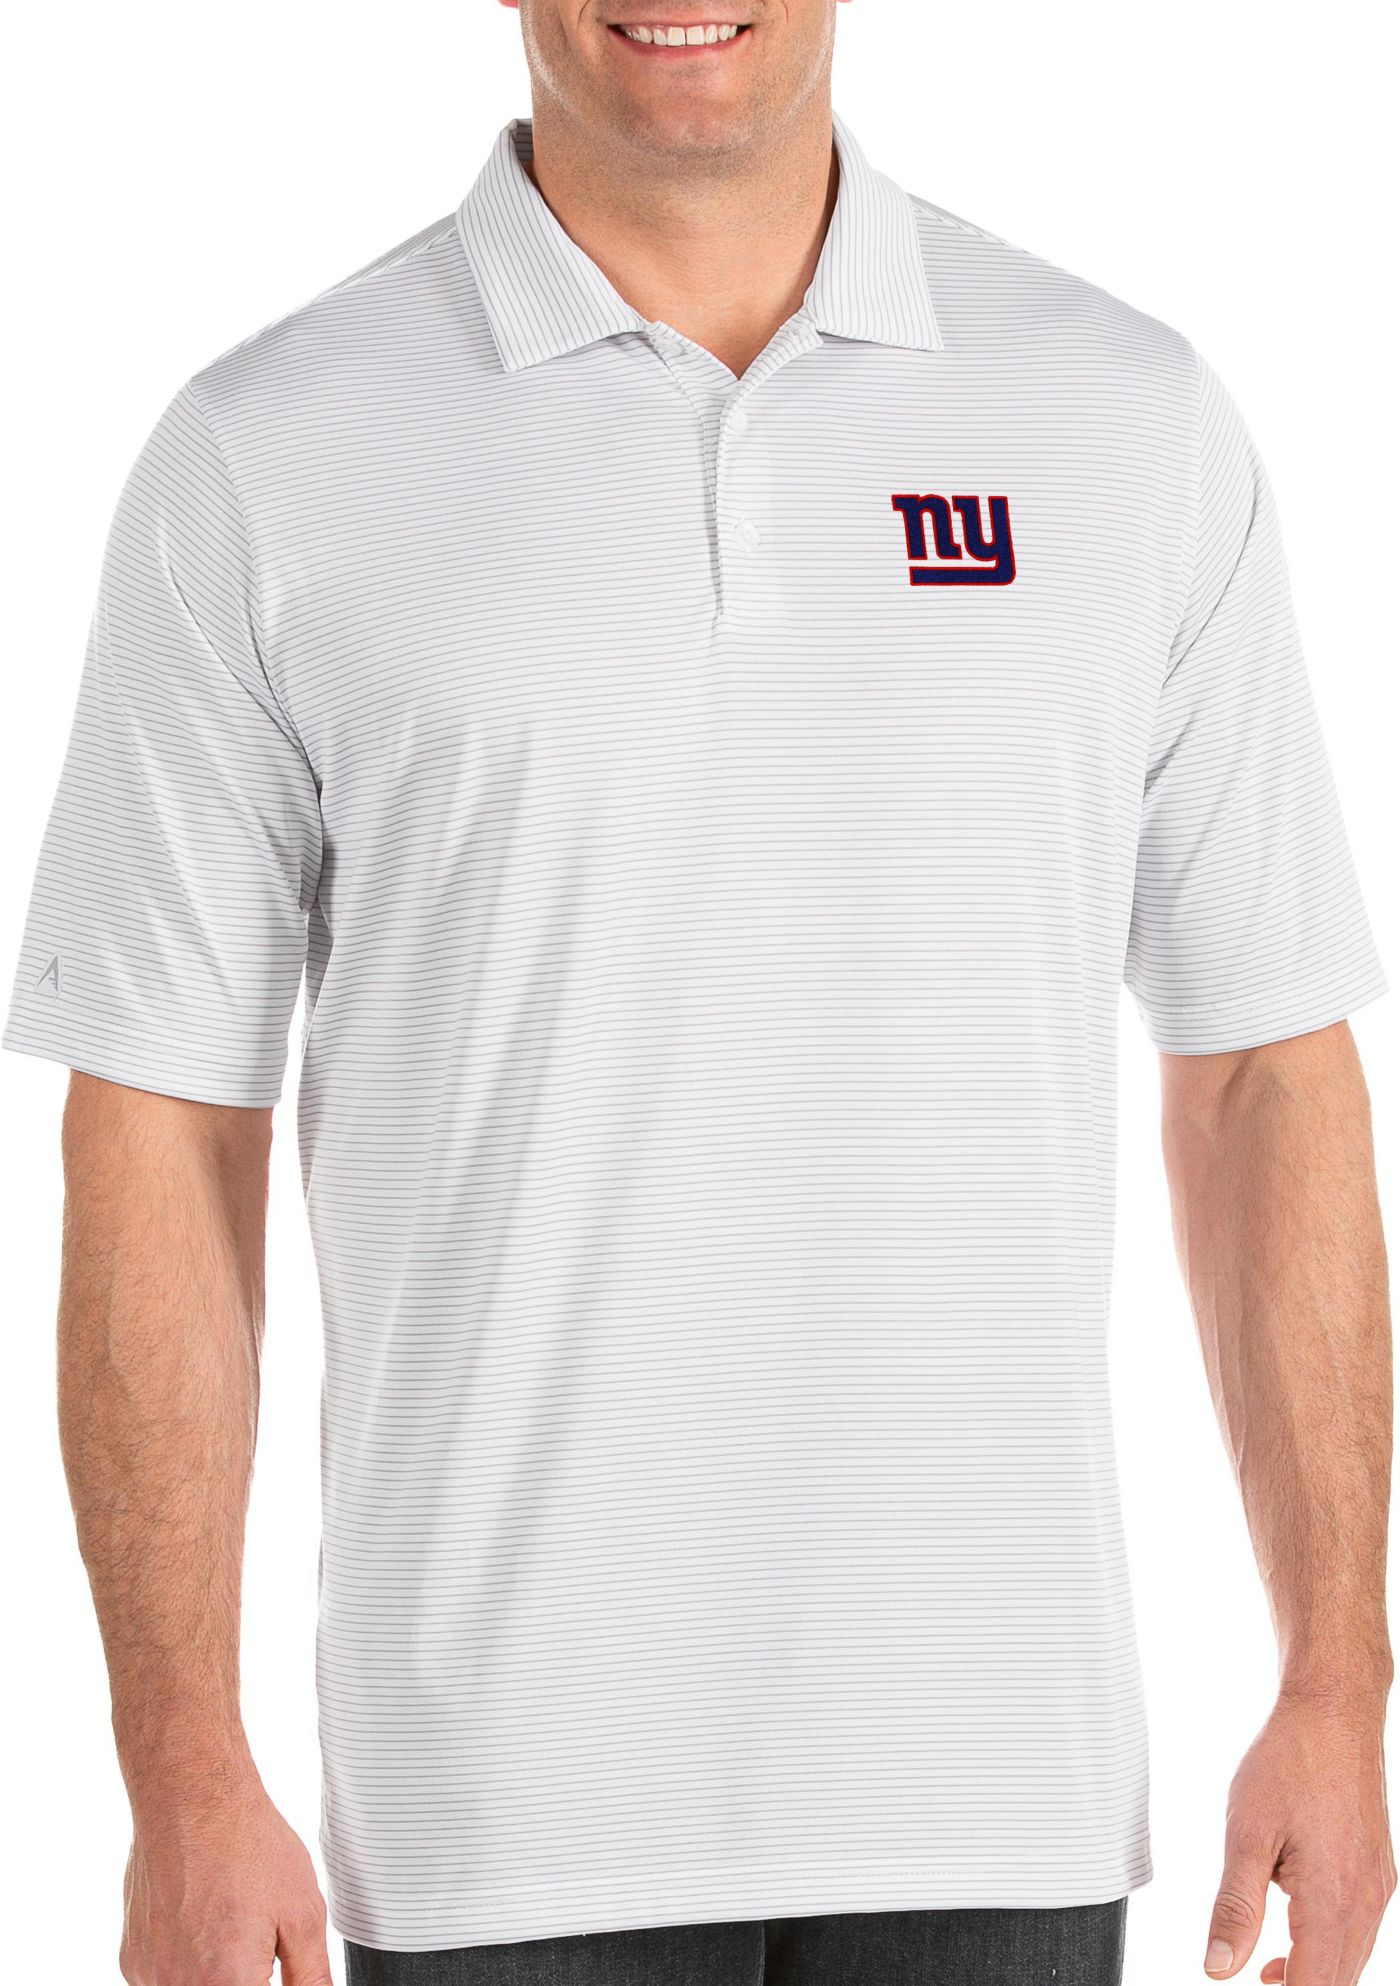 Antigua Men's New York Giants Quest White Polo